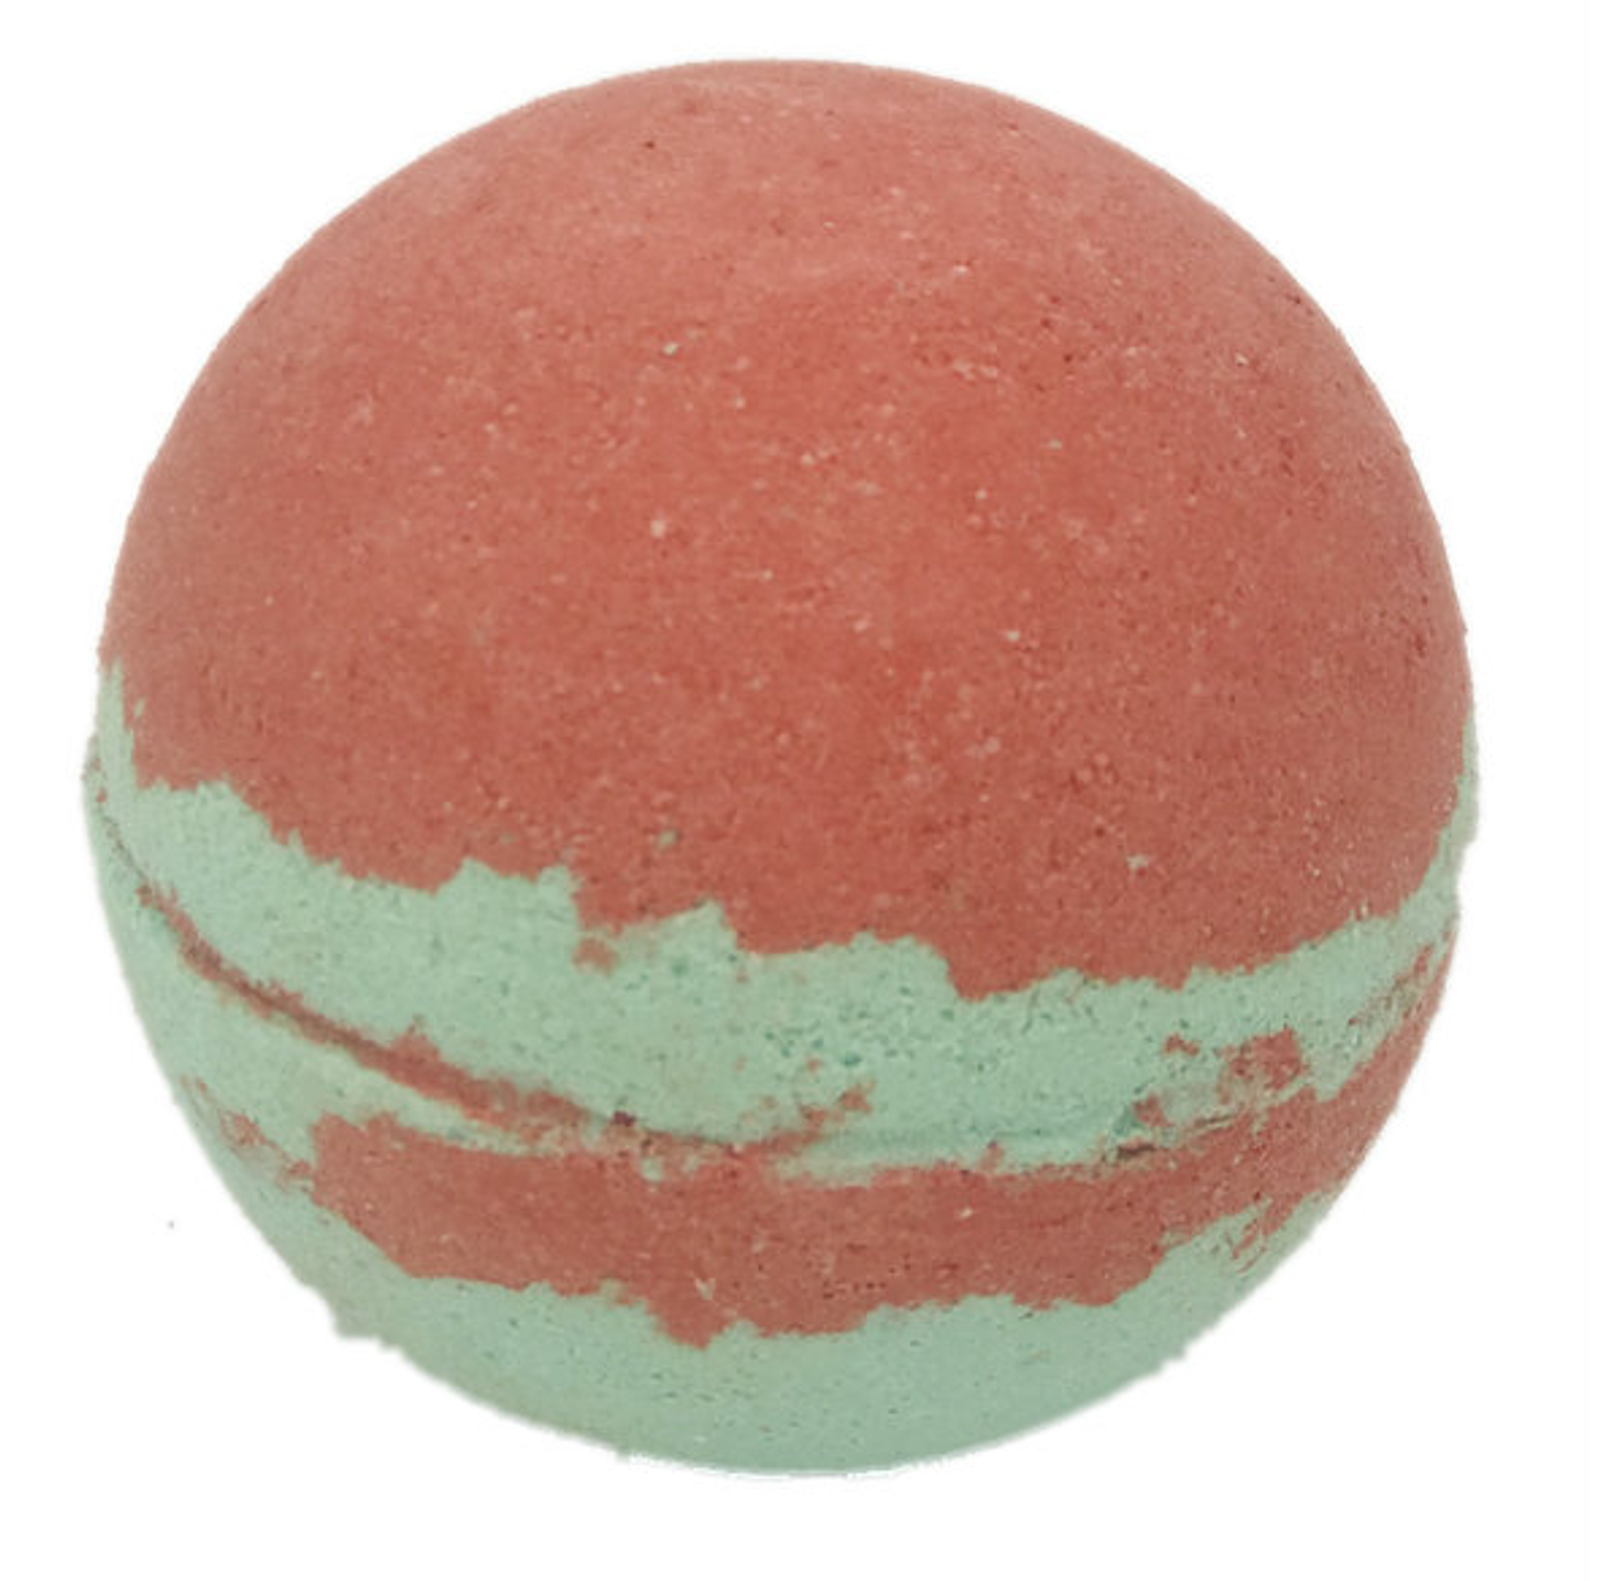 Pearberry Surprise Bath Bomb